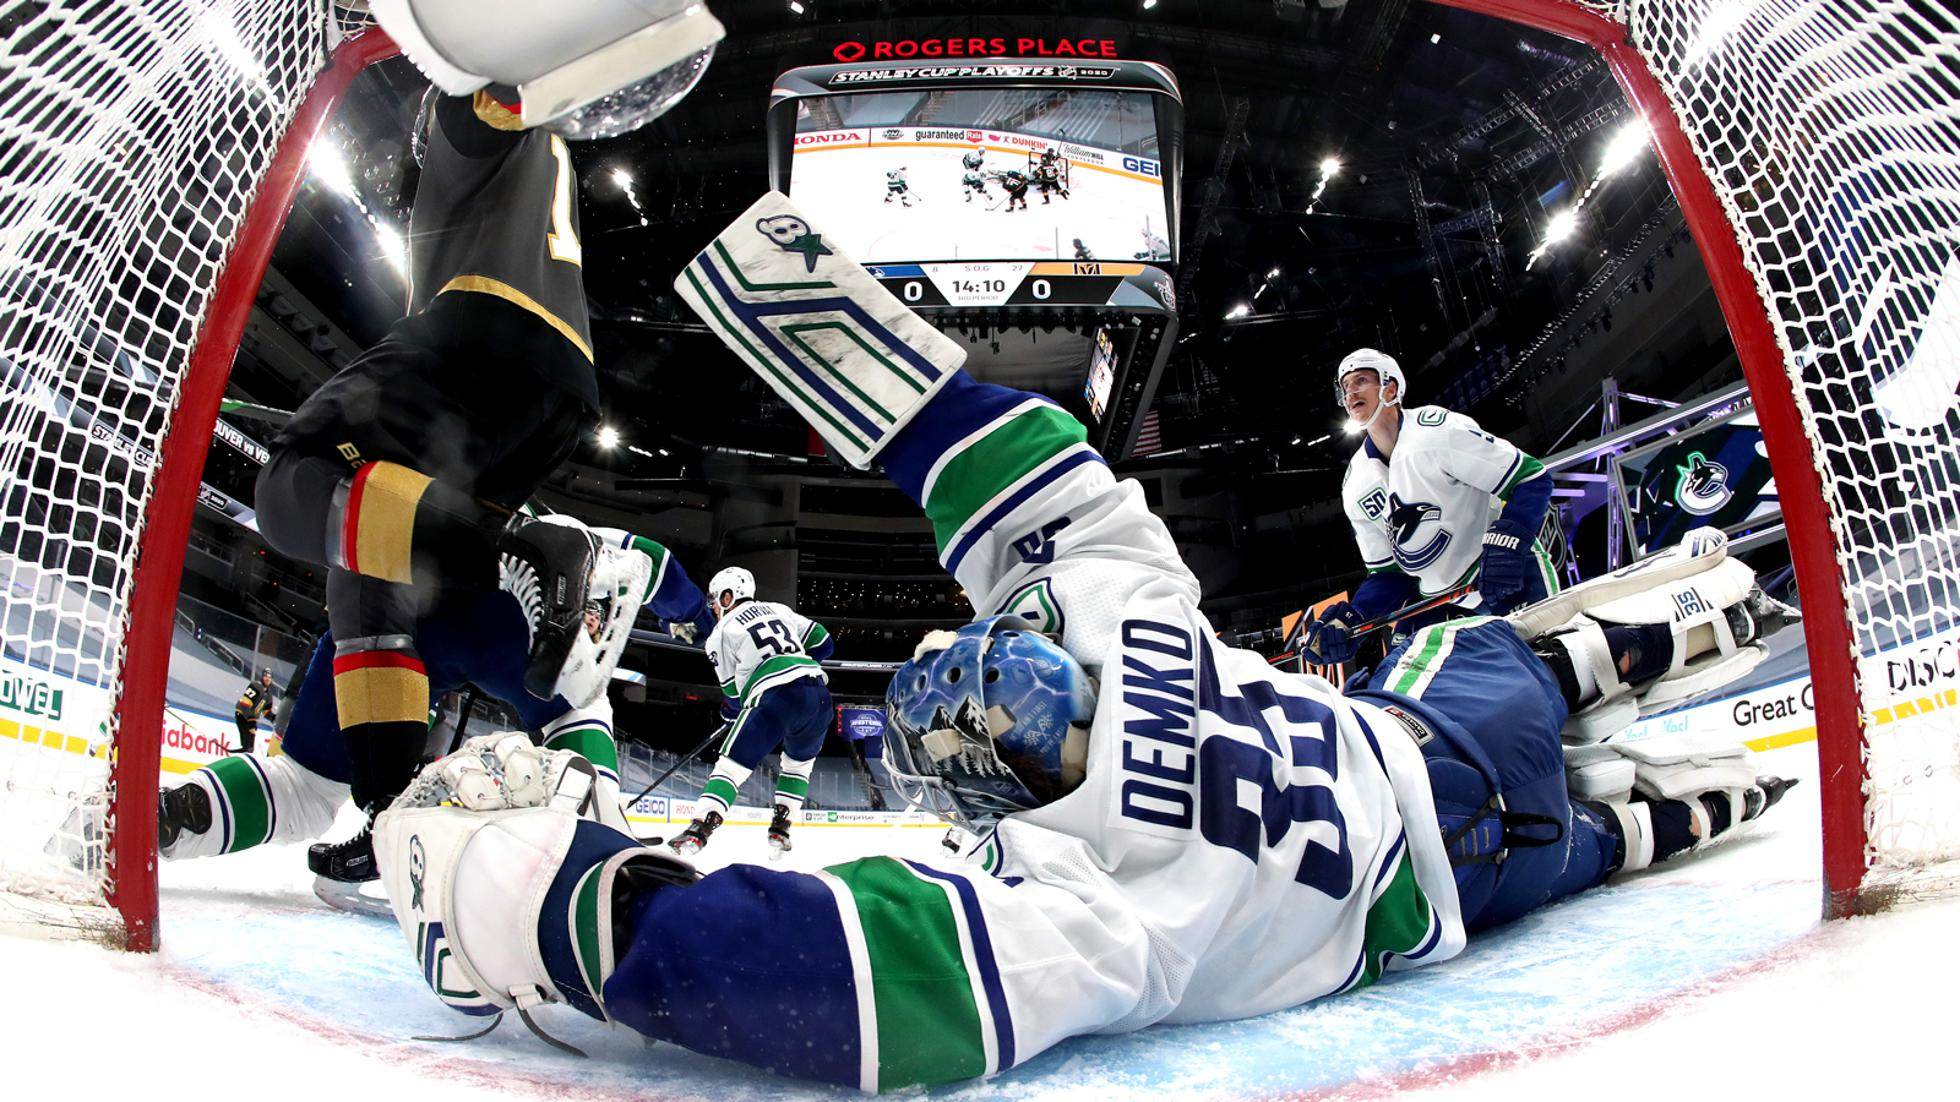 EDMONTON, ALBERTA - SEPTEMBER 04:  Goaltender Thatcher Demko #35 of the Vancouver Canucks stretches to make the save against the Vegas Golden Knights during the third period of Game Seven of the Western Conference Second Round of the 2020 NHL Stanley Cup Playoffs at Rogers Place on September 04, 2020 in Edmonton, Alberta. (Photo by Dave Sandford/NHLI via Getty Images)